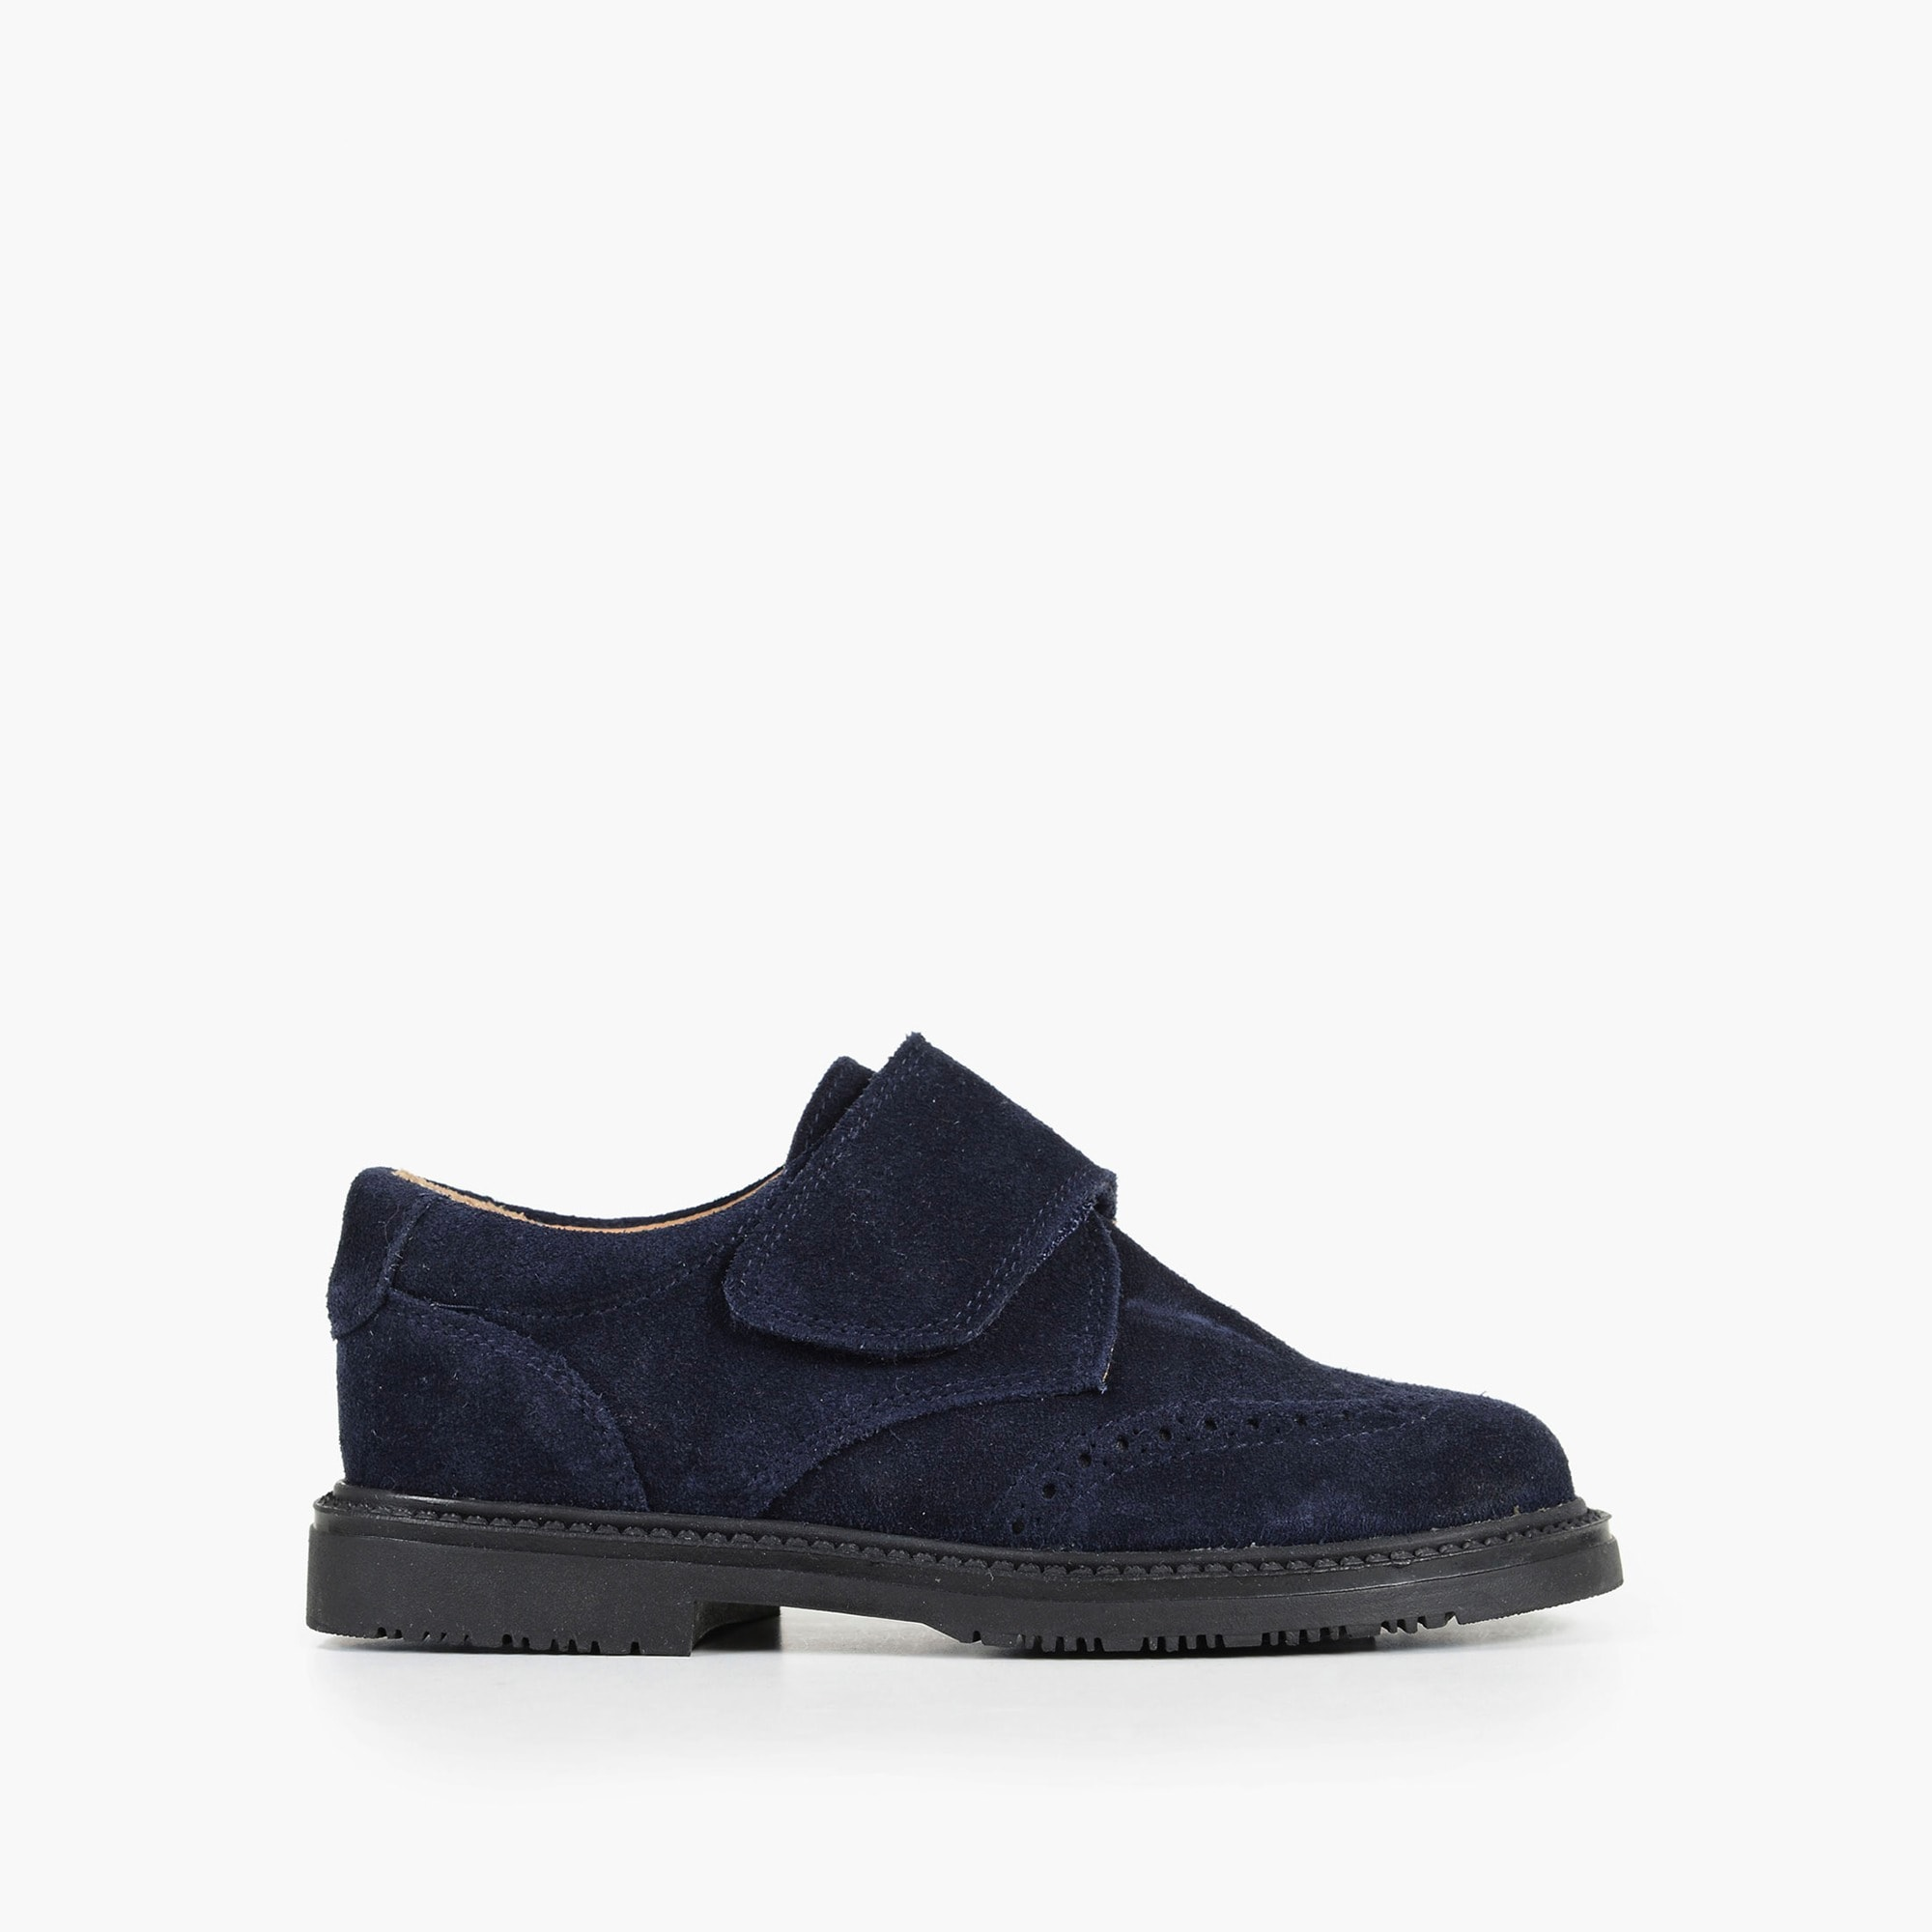 boys Boys' Childrenchic® Velcro® loafers in navy suede